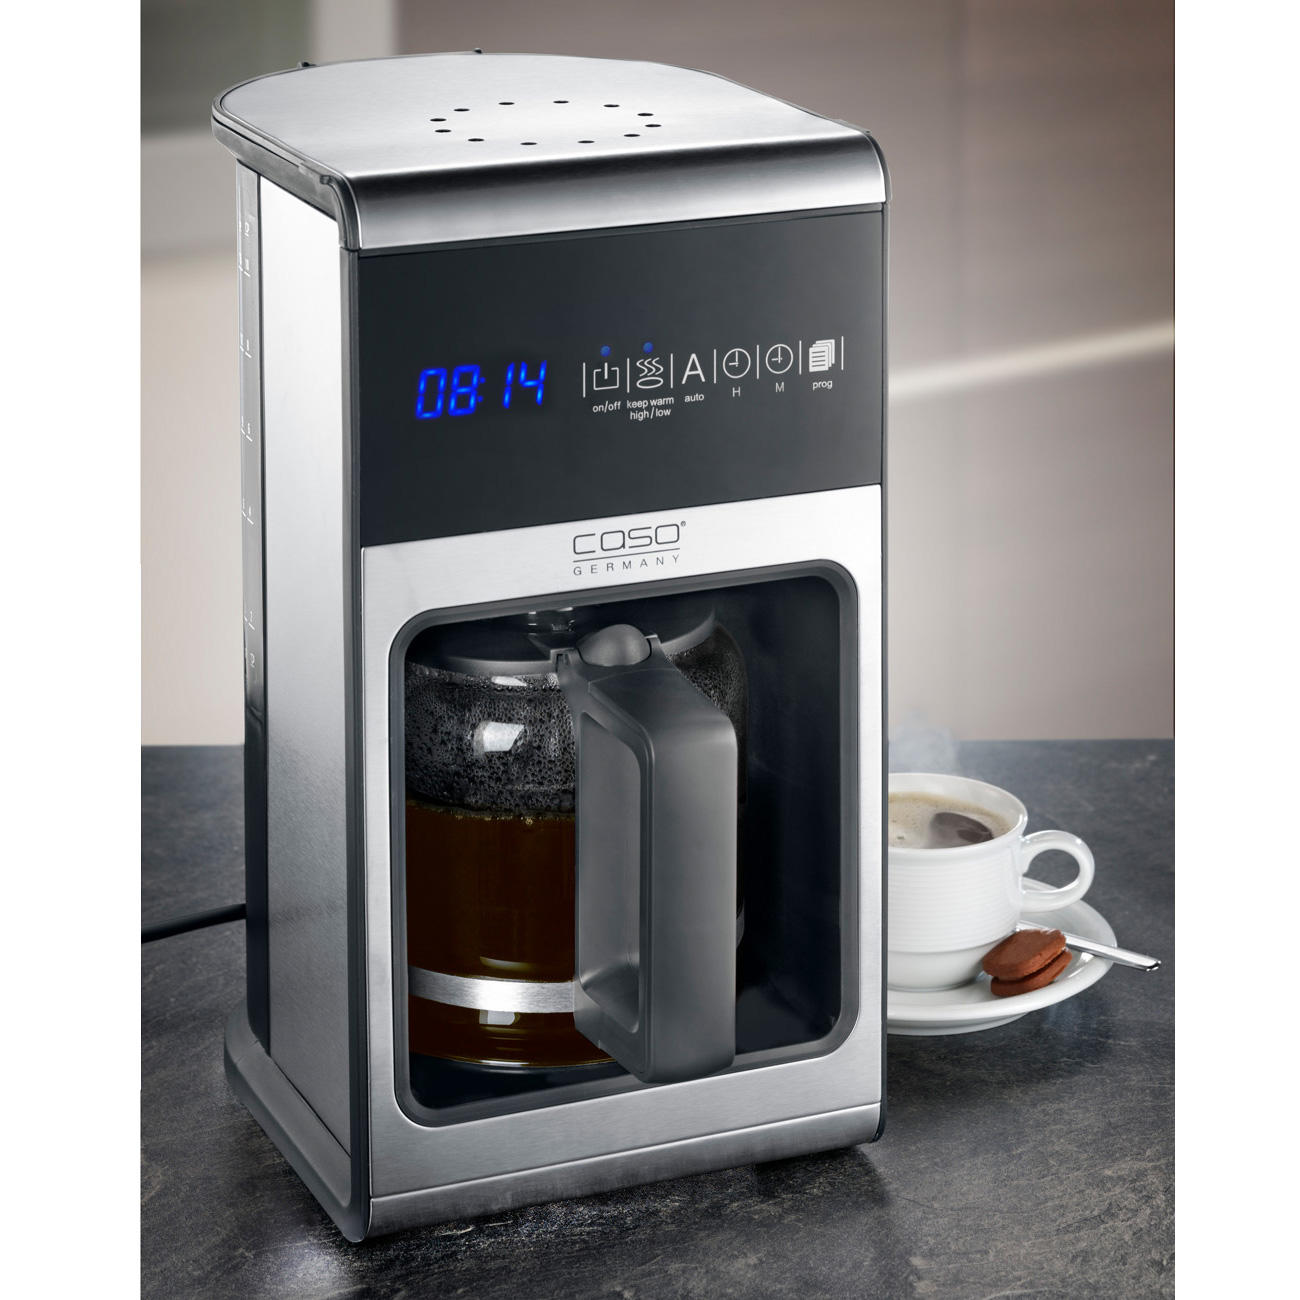 Machine caf caso design coffee one pas cher pro idee - Machine a cafe design ...